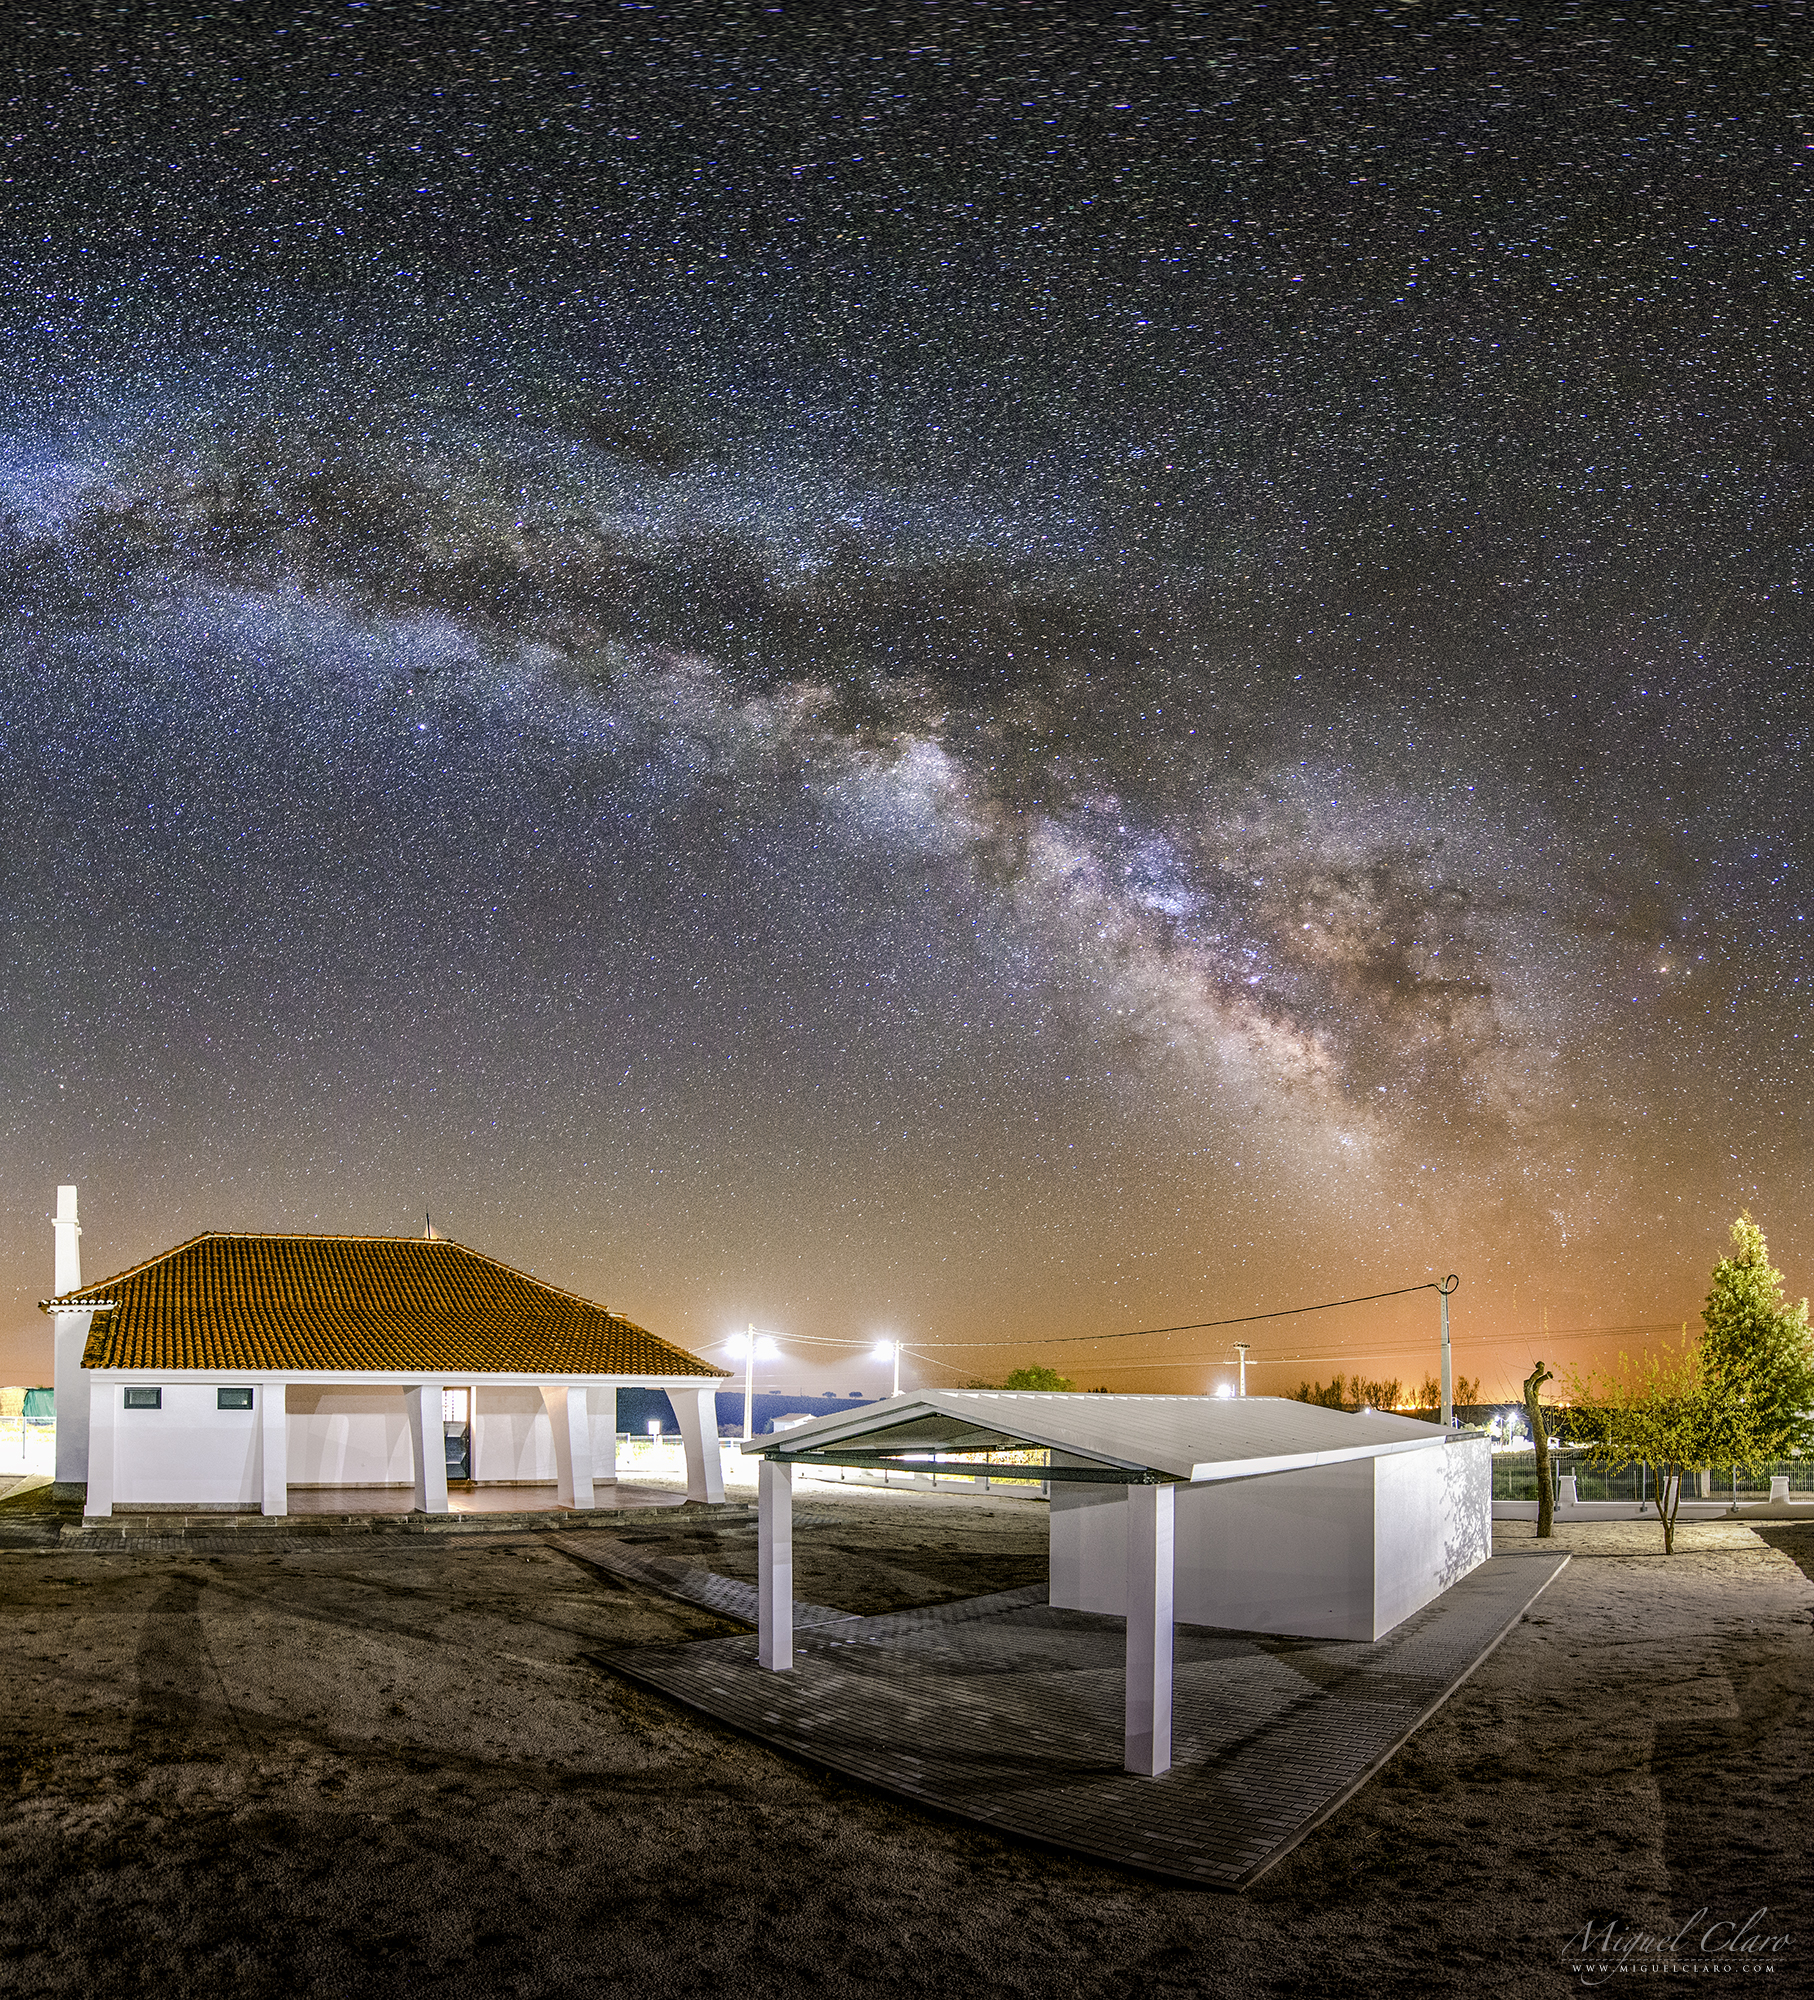 Night sky portfolio categories astrophotography by miguel claro cumeada in reguengos de monsaraz portugal is a small village where is located the headquarter of dark sky alqueva reserve the first starlight tourism fandeluxe Images